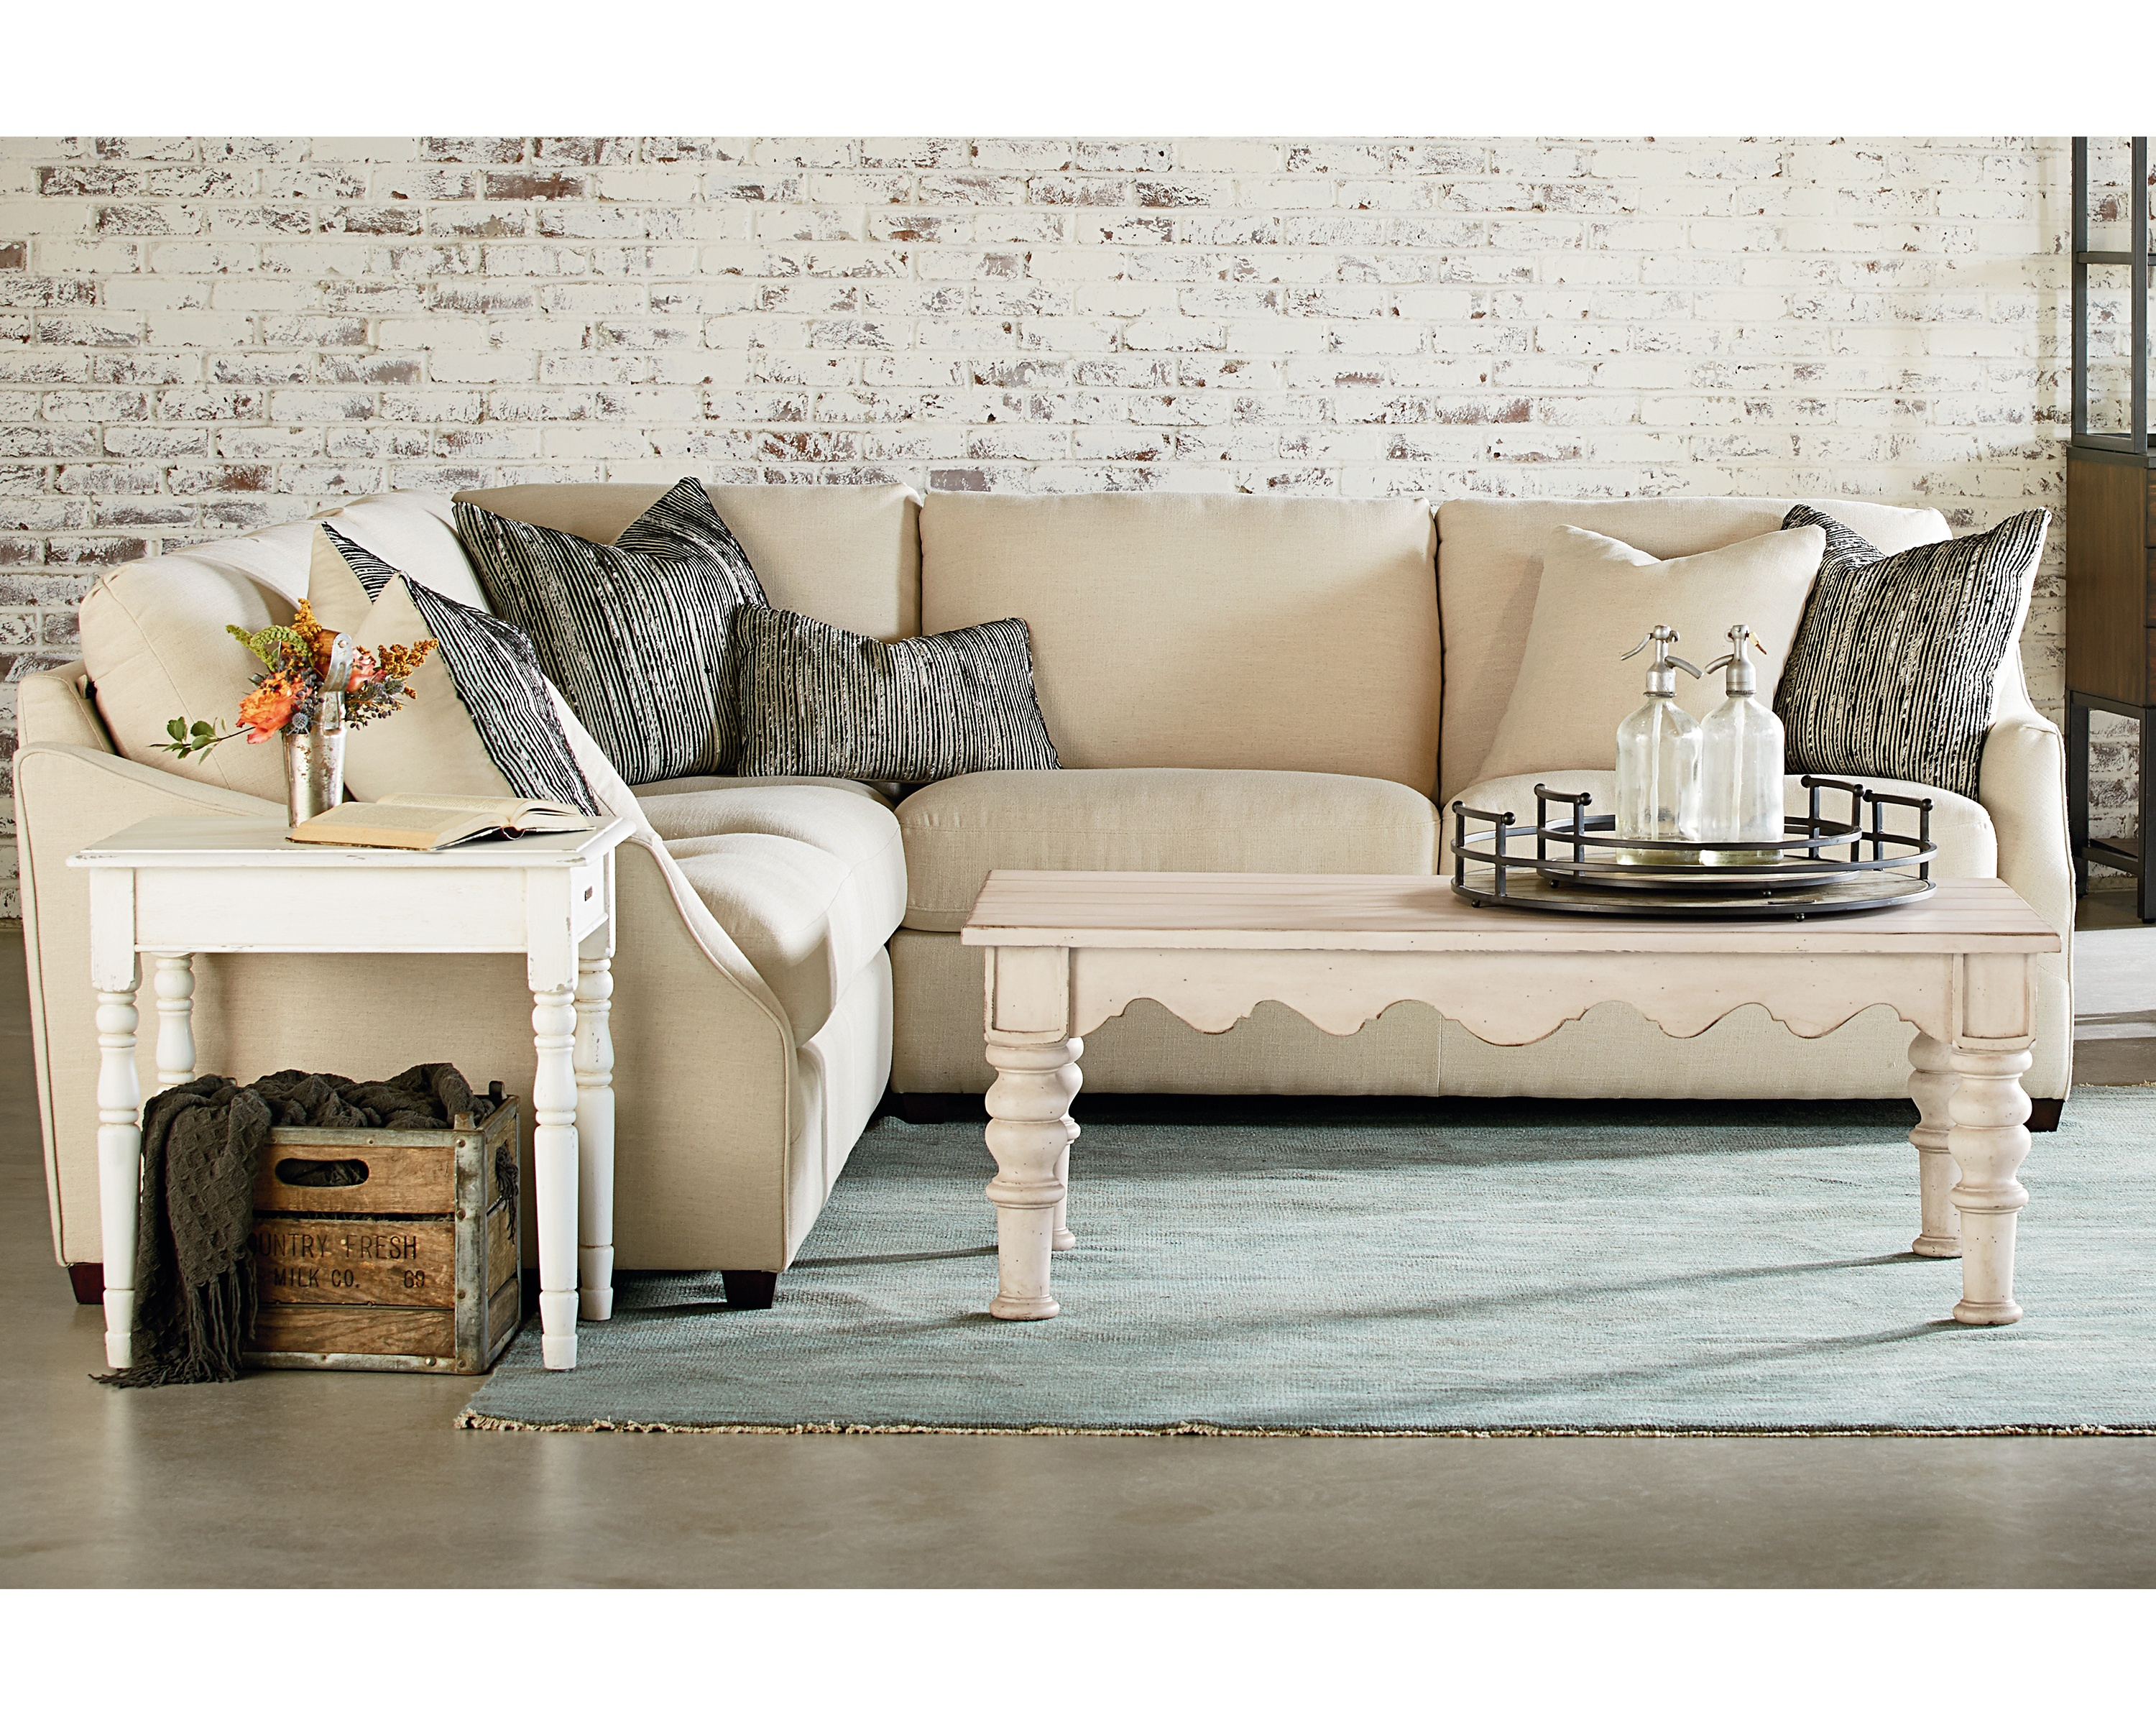 Homestead Sectional - Magnolia Home inside Magnolia Home Homestead Sofa Chairs by Joanna Gaines